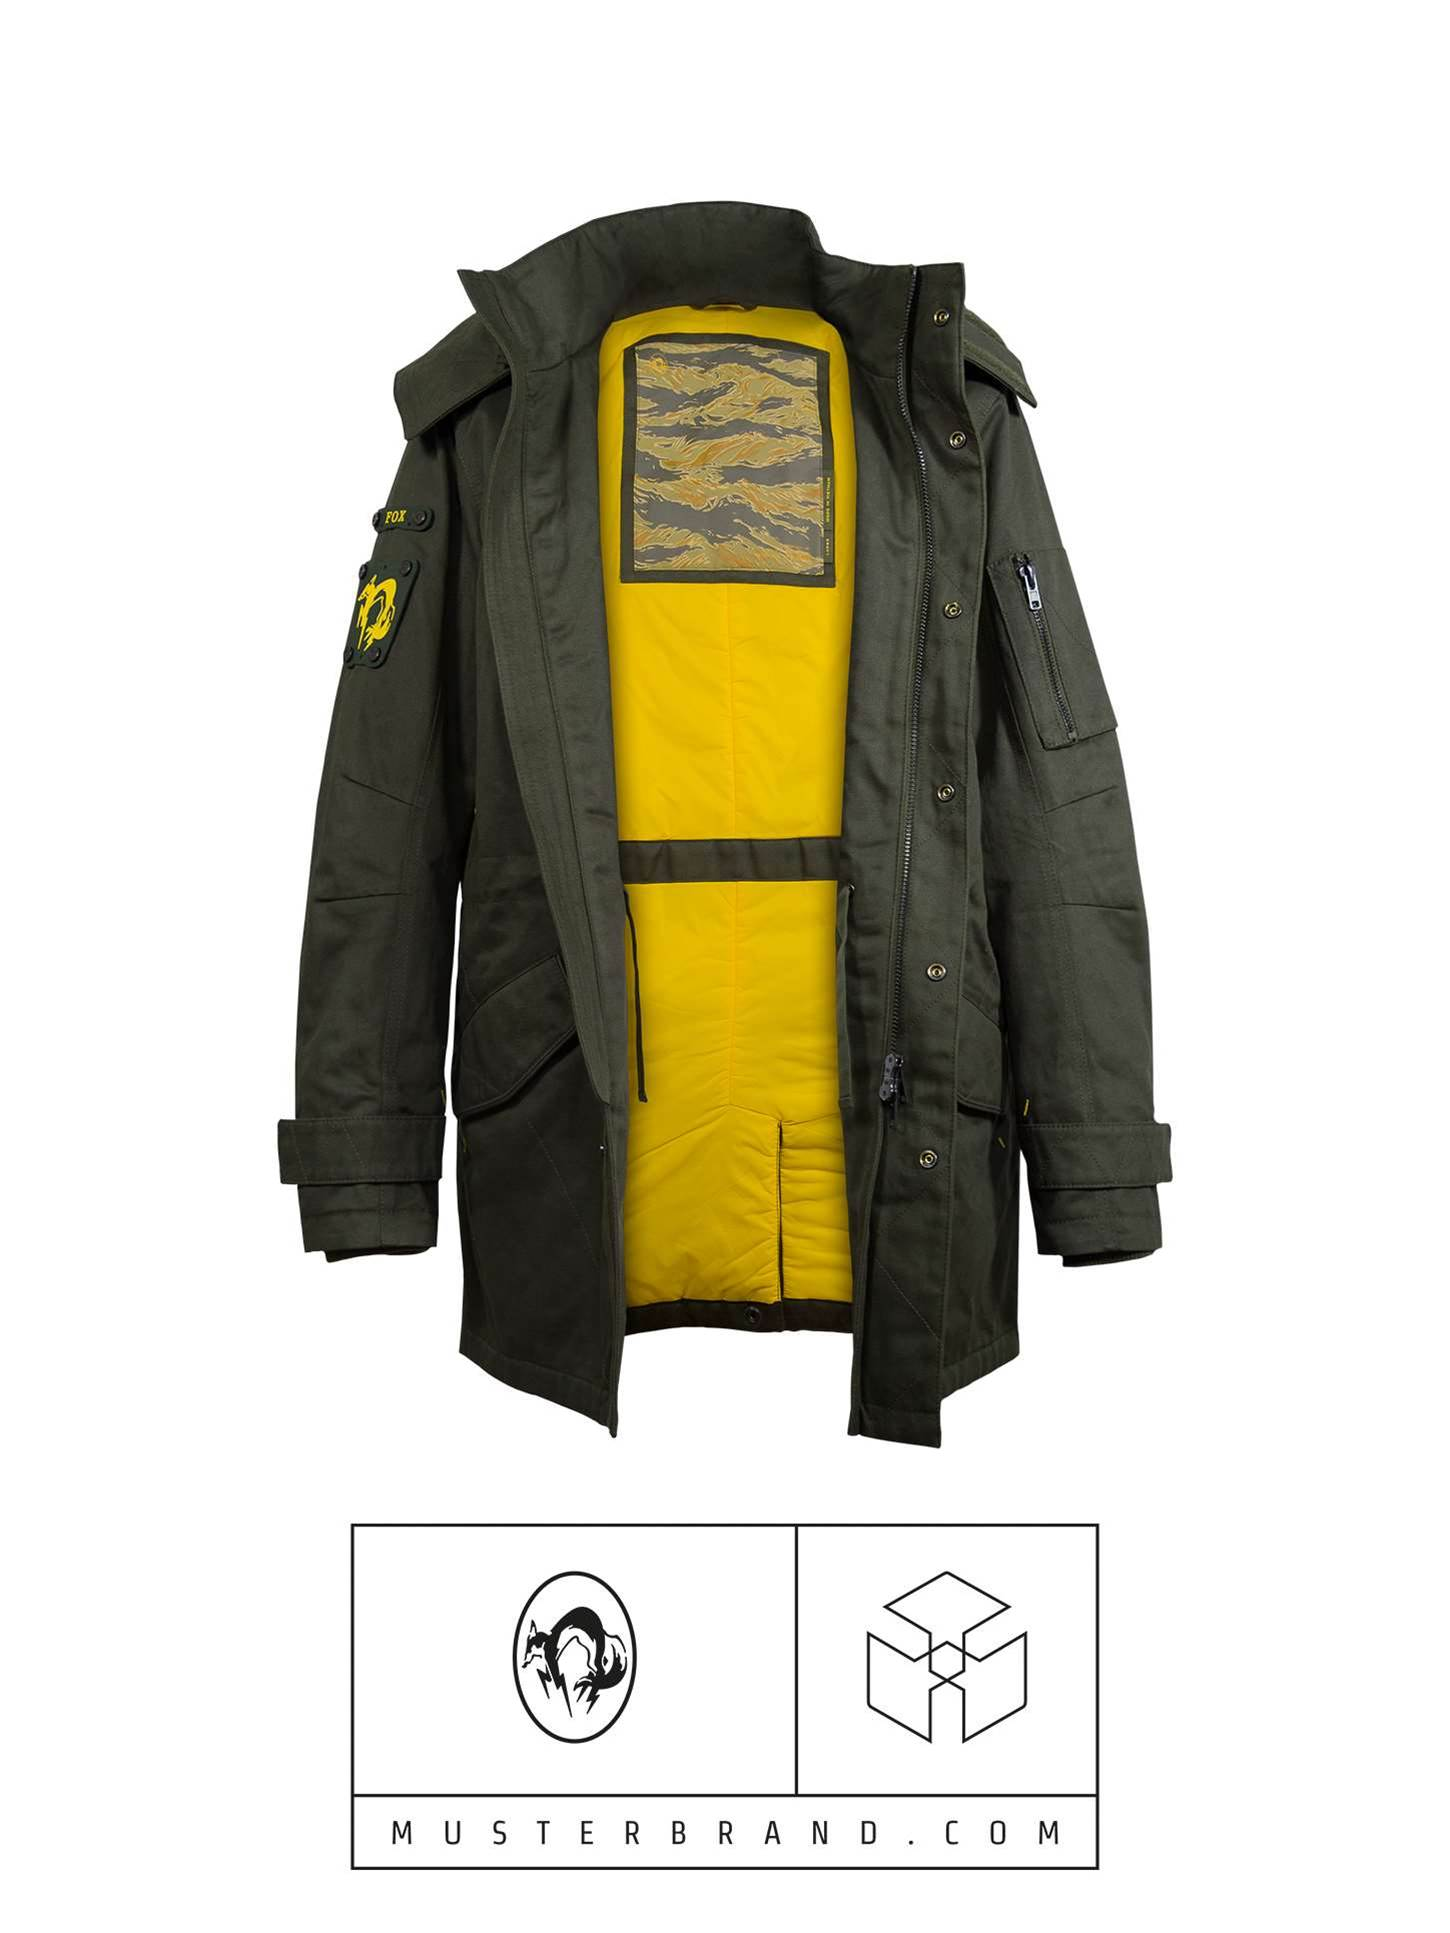 Konami announces Metal Gear Solid-inspired clothing line